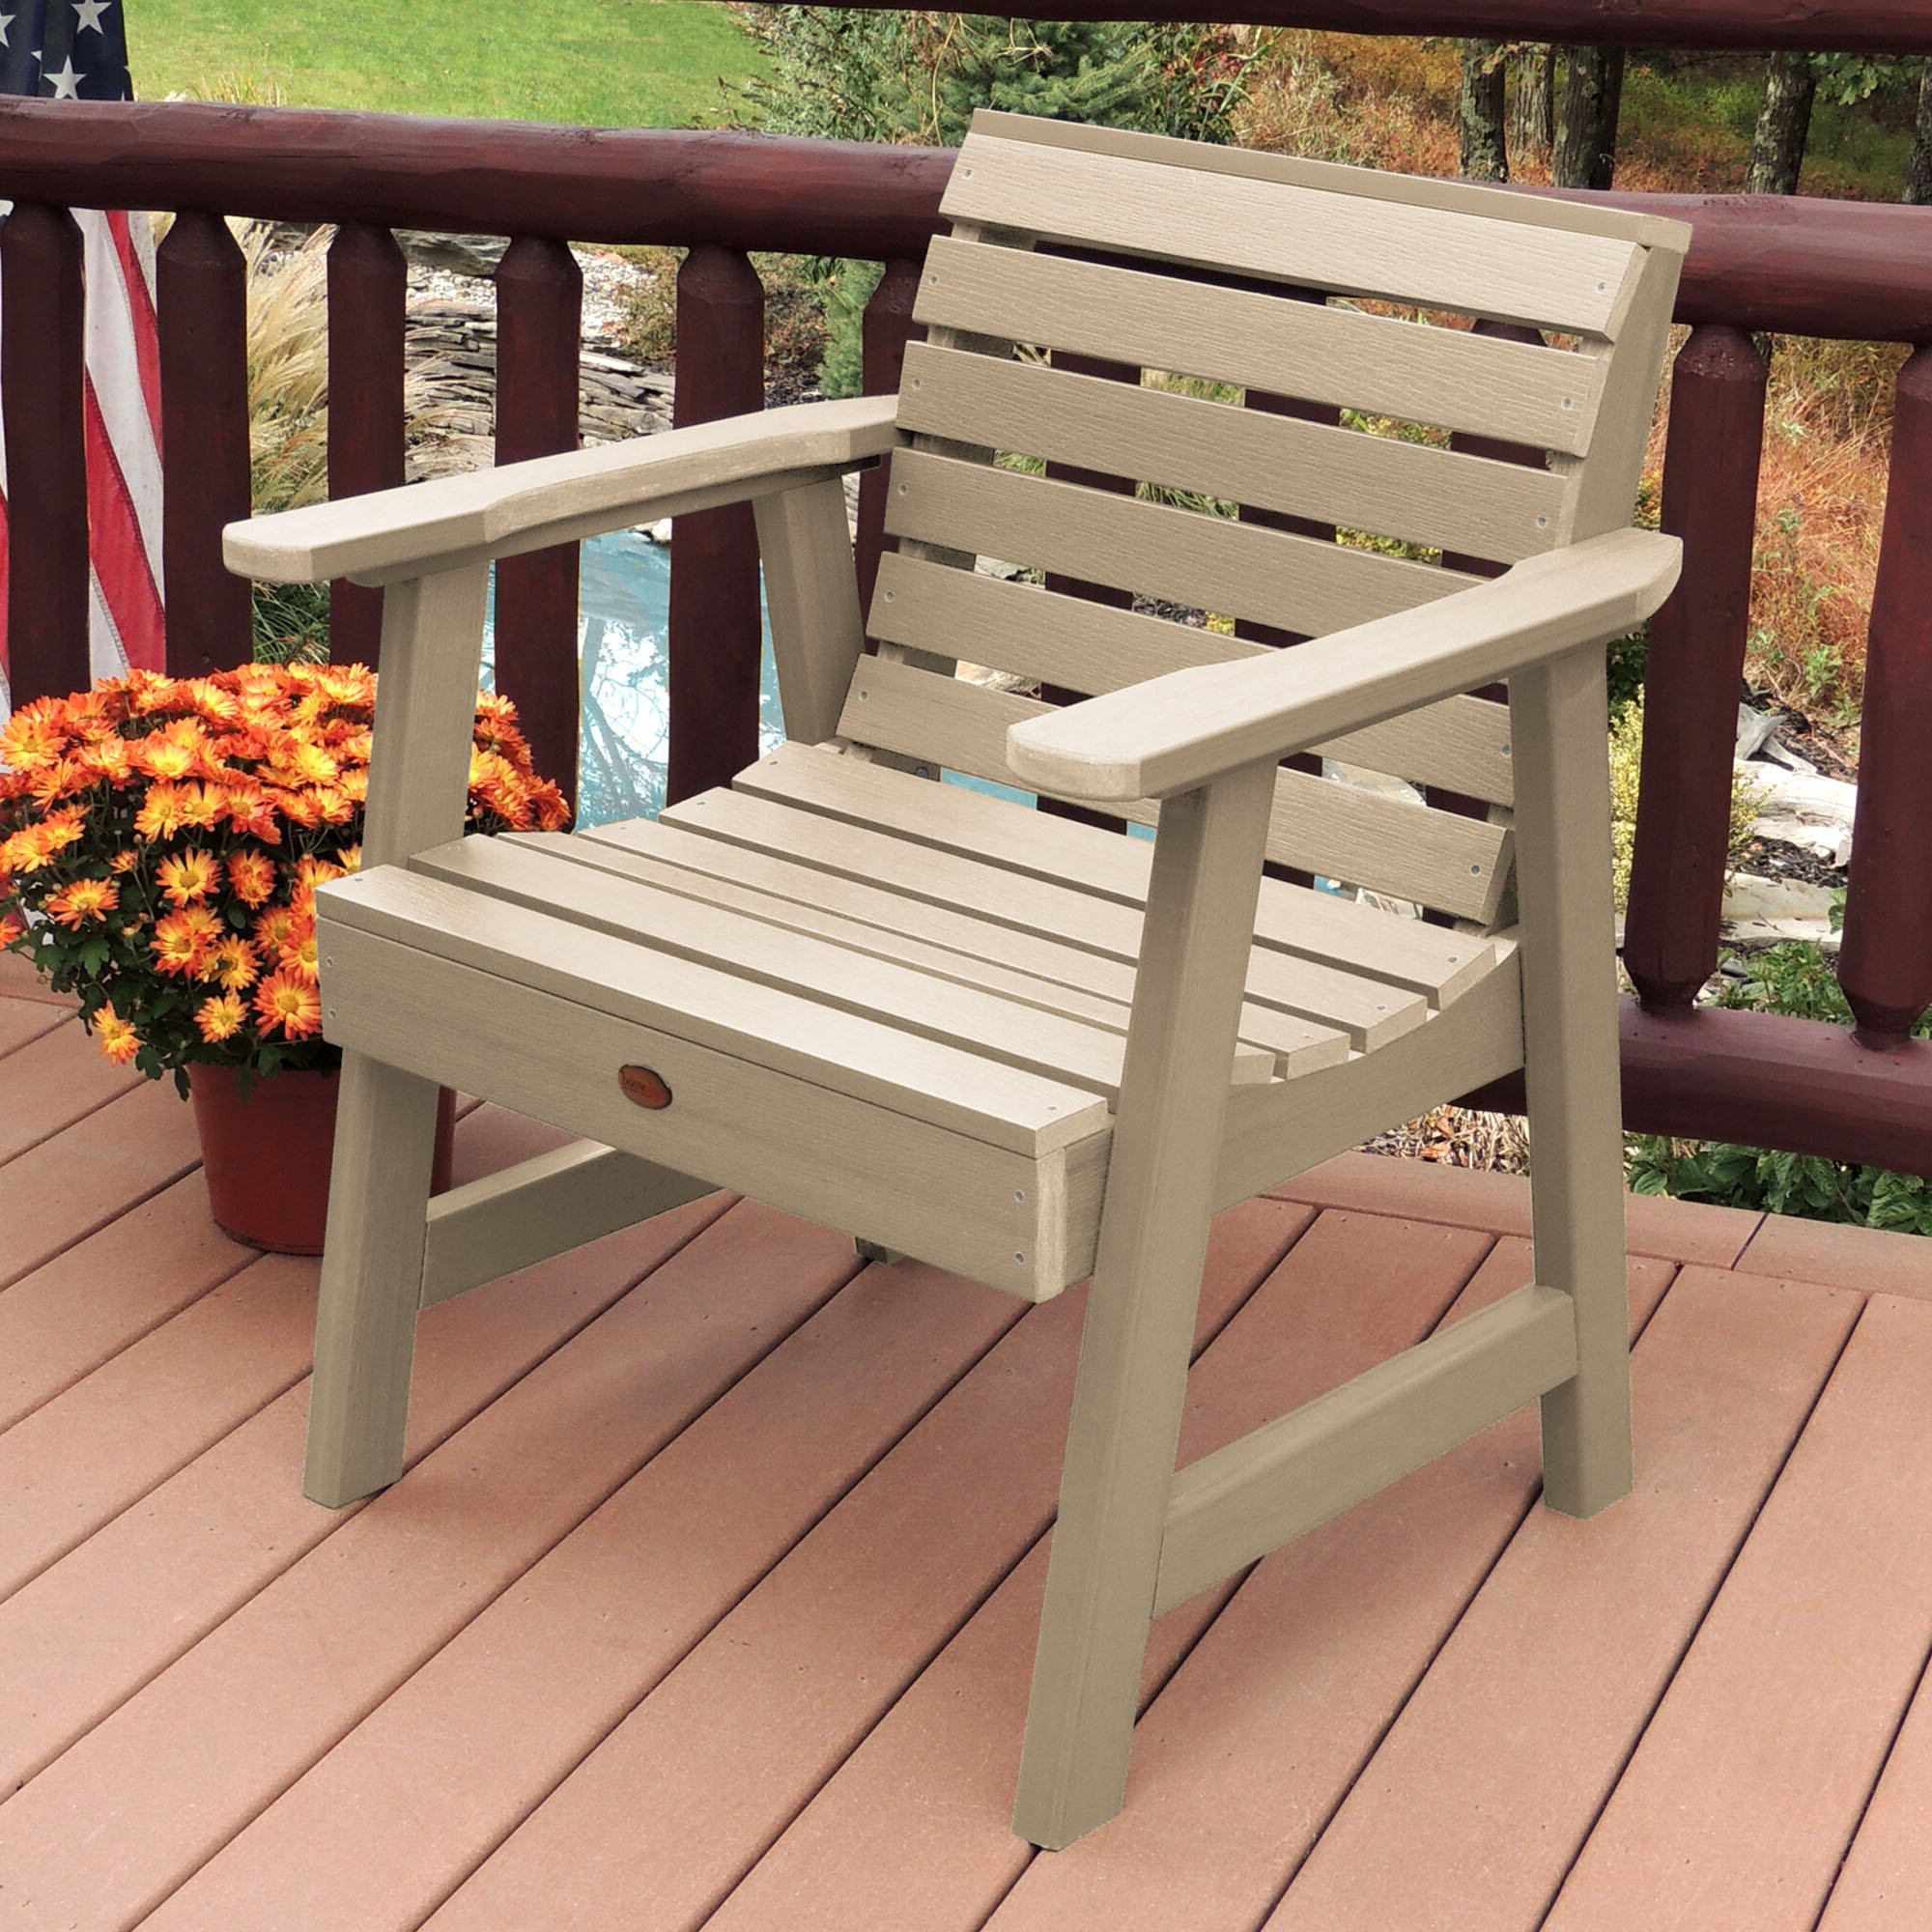 Lietz Garden Patio Chair Intended For Most Current Coleen Outdoor Teak Garden Benches (View 18 of 30)